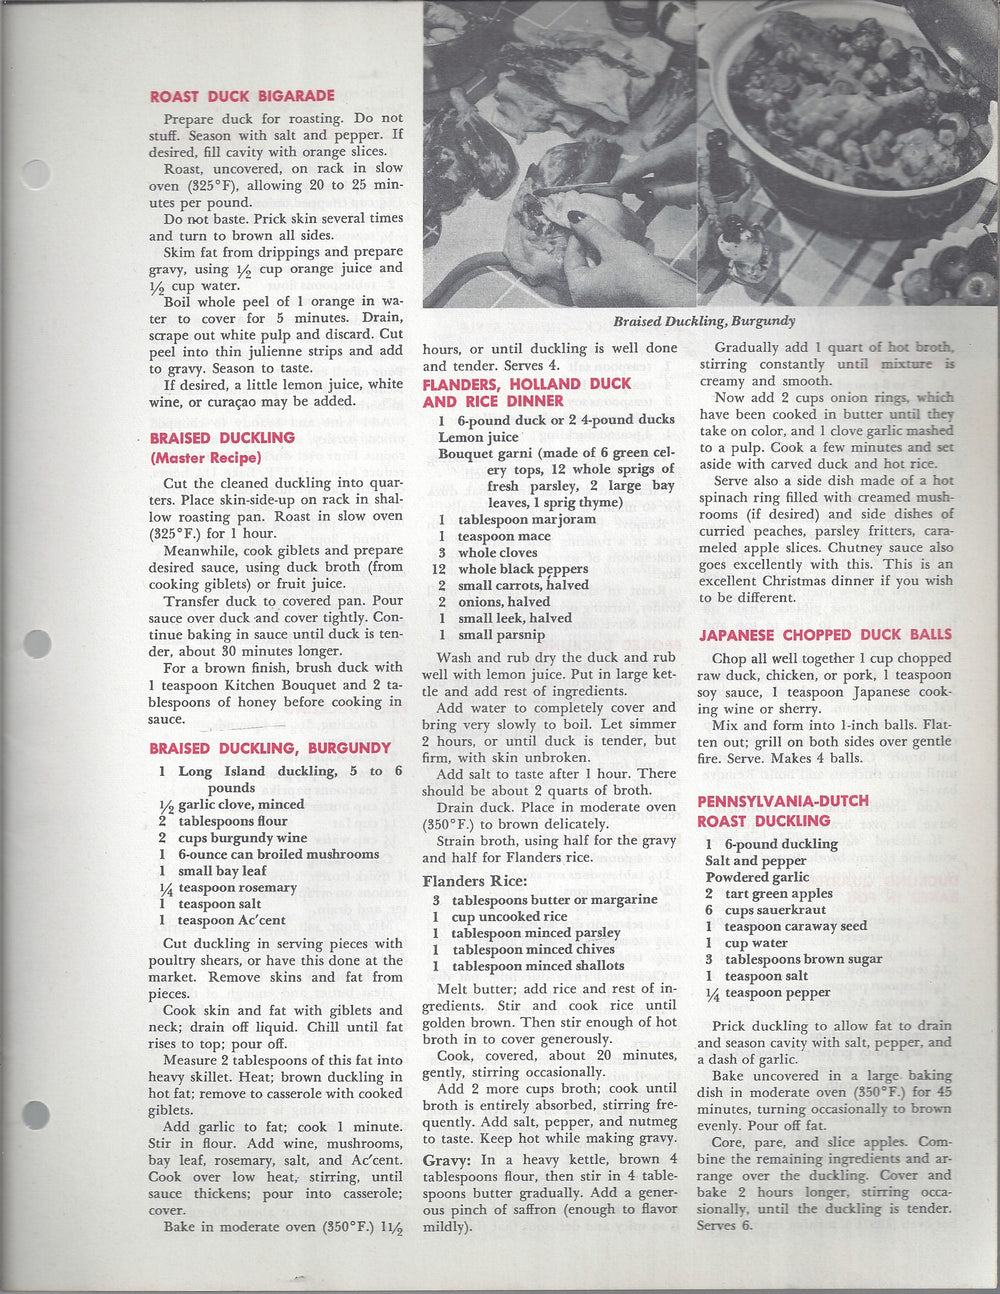 Mary Margaret McBride Encyclopedia of Cooking Cook Book Deluxe Edition 1960 (2ND EDITION) (PAGES 1057-1088)